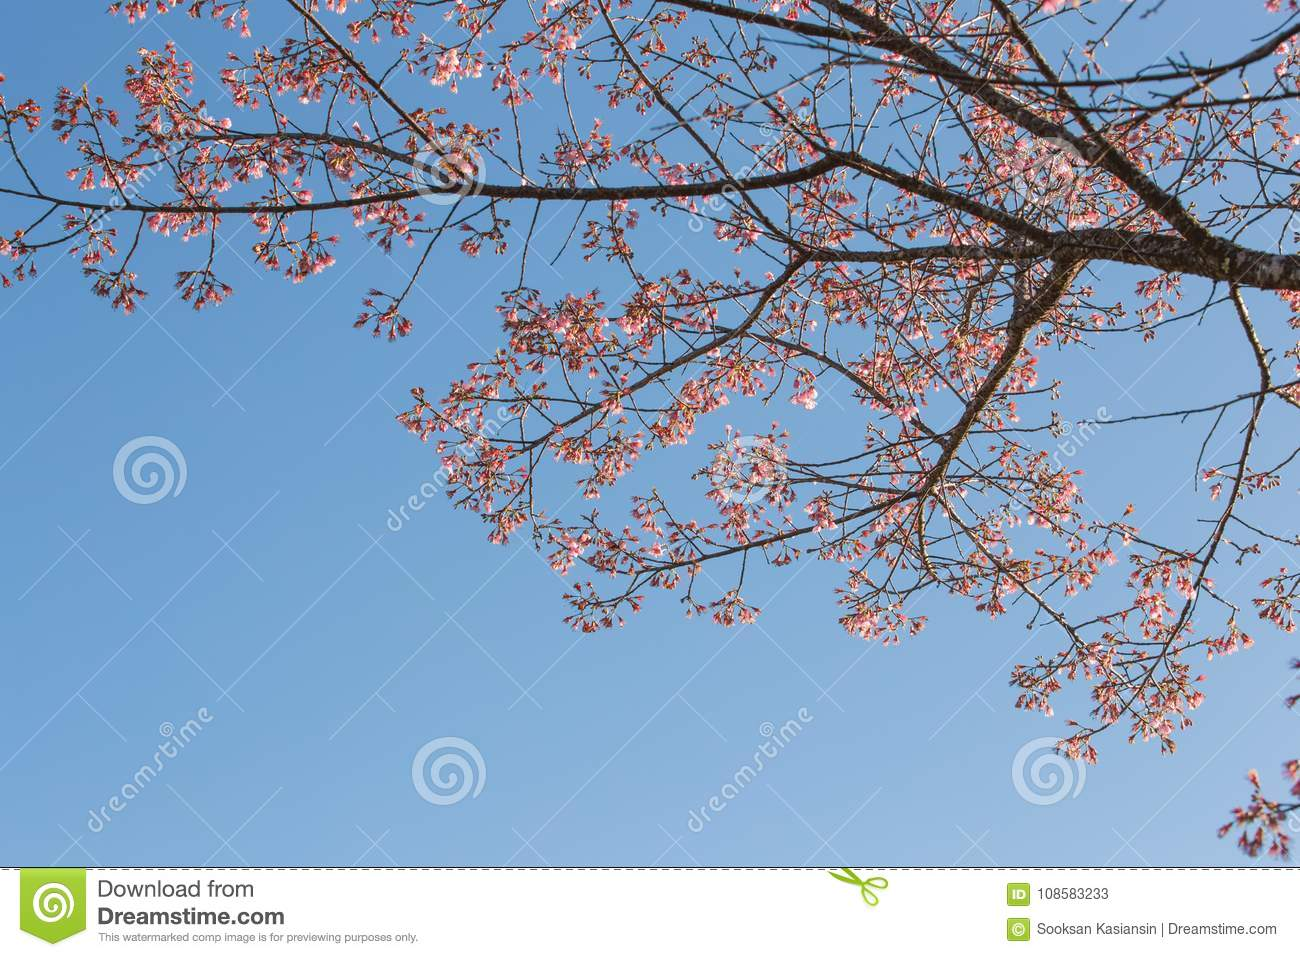 Pink flowers of wild himalayan cherry tree with blue sky stock image download pink flowers of wild himalayan cherry tree with blue sky stock image image of izmirmasajfo